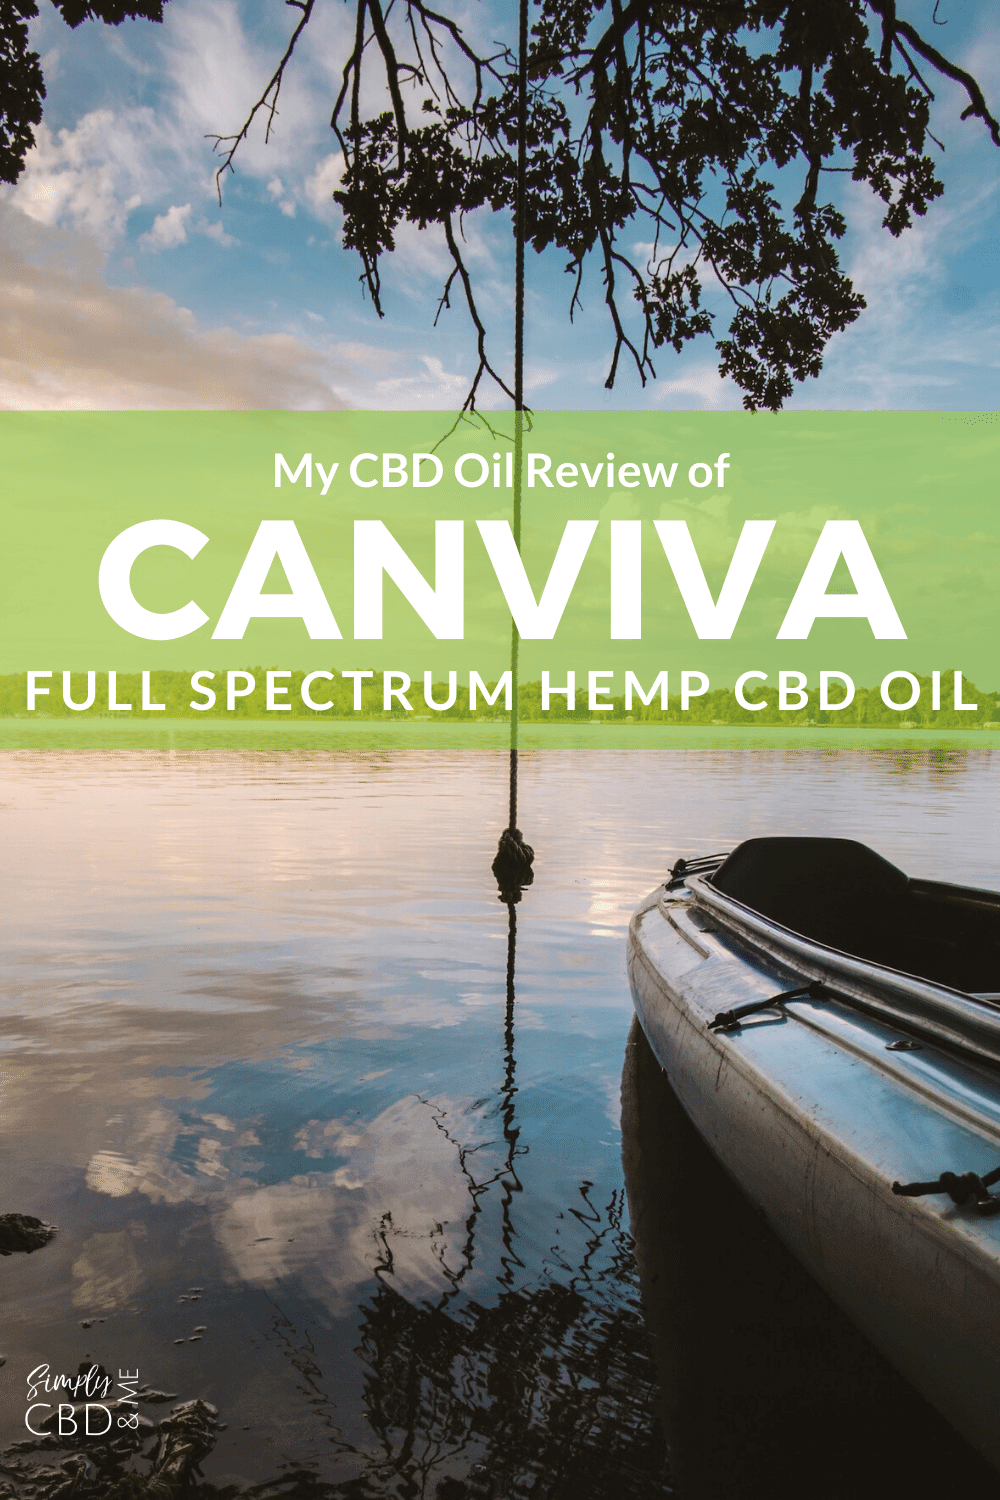 My in-depth review of Canviva Full Spectrum CBD Oil - learn what I liked, didn't like and why you should try it!